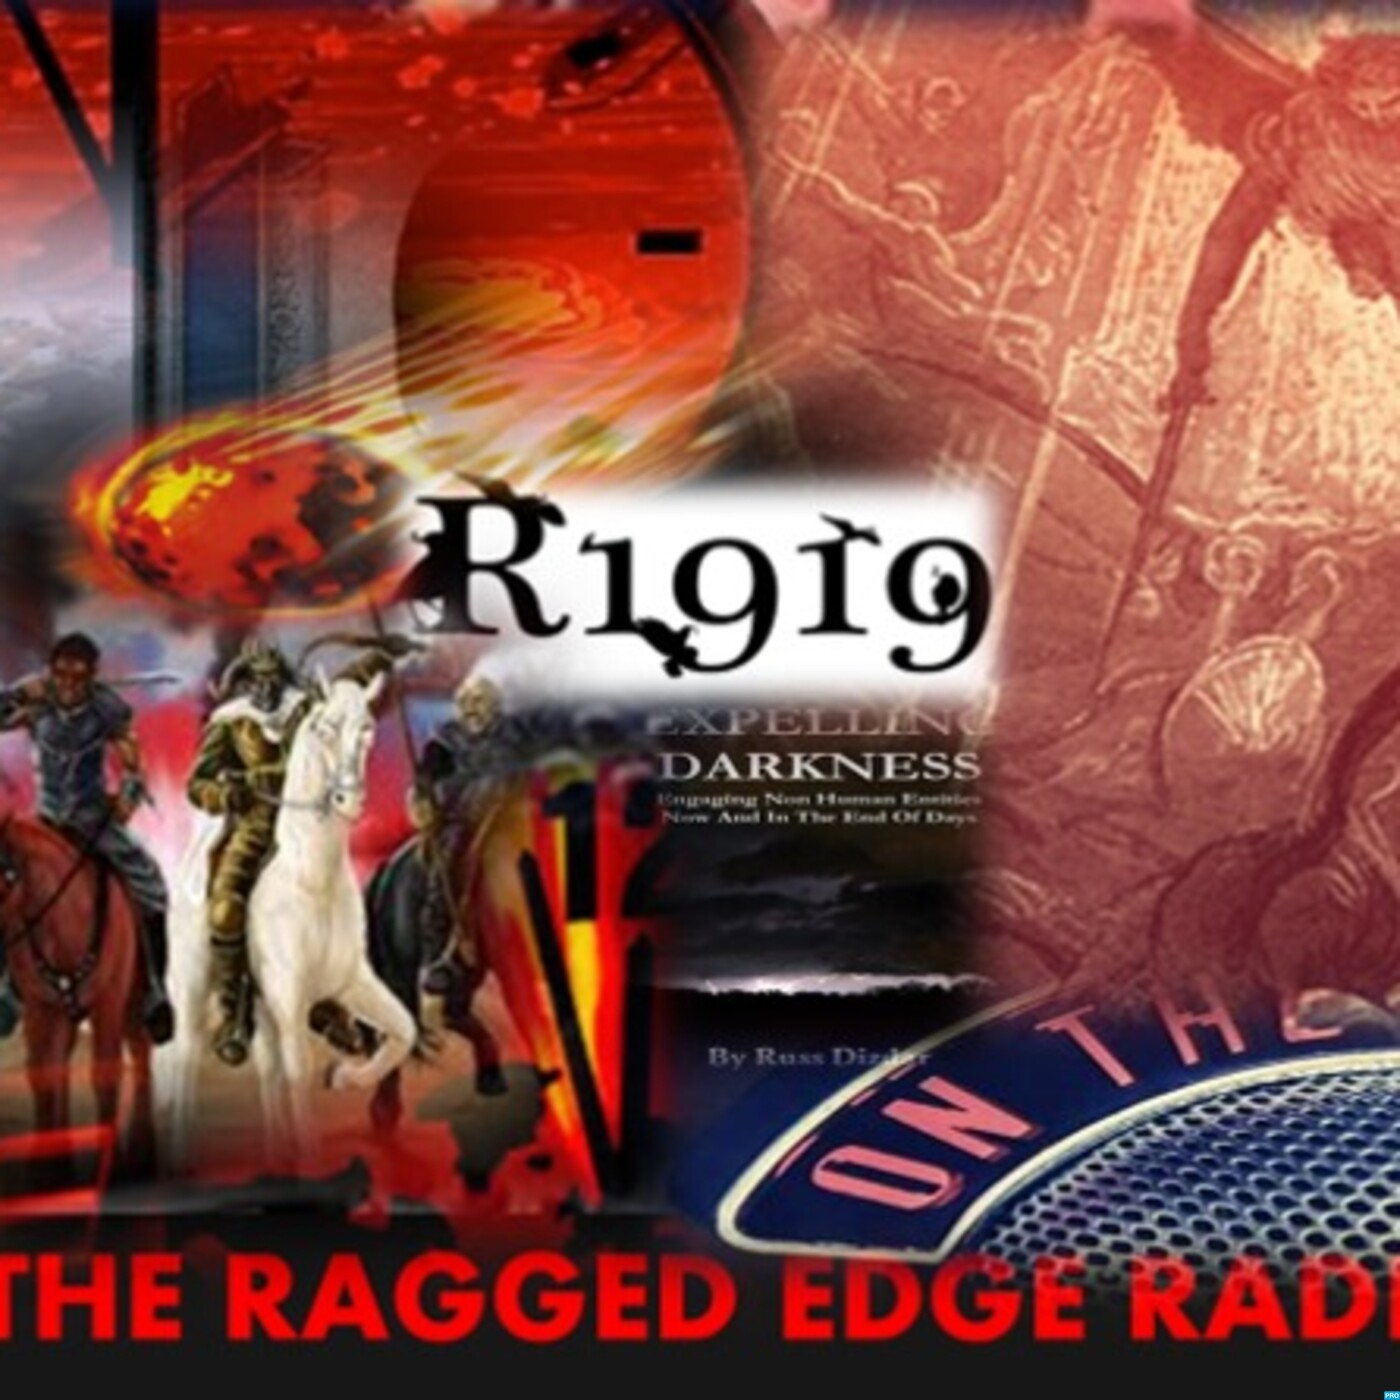 THE RAGGED EDGE RADIO ....with Russ Dizdar